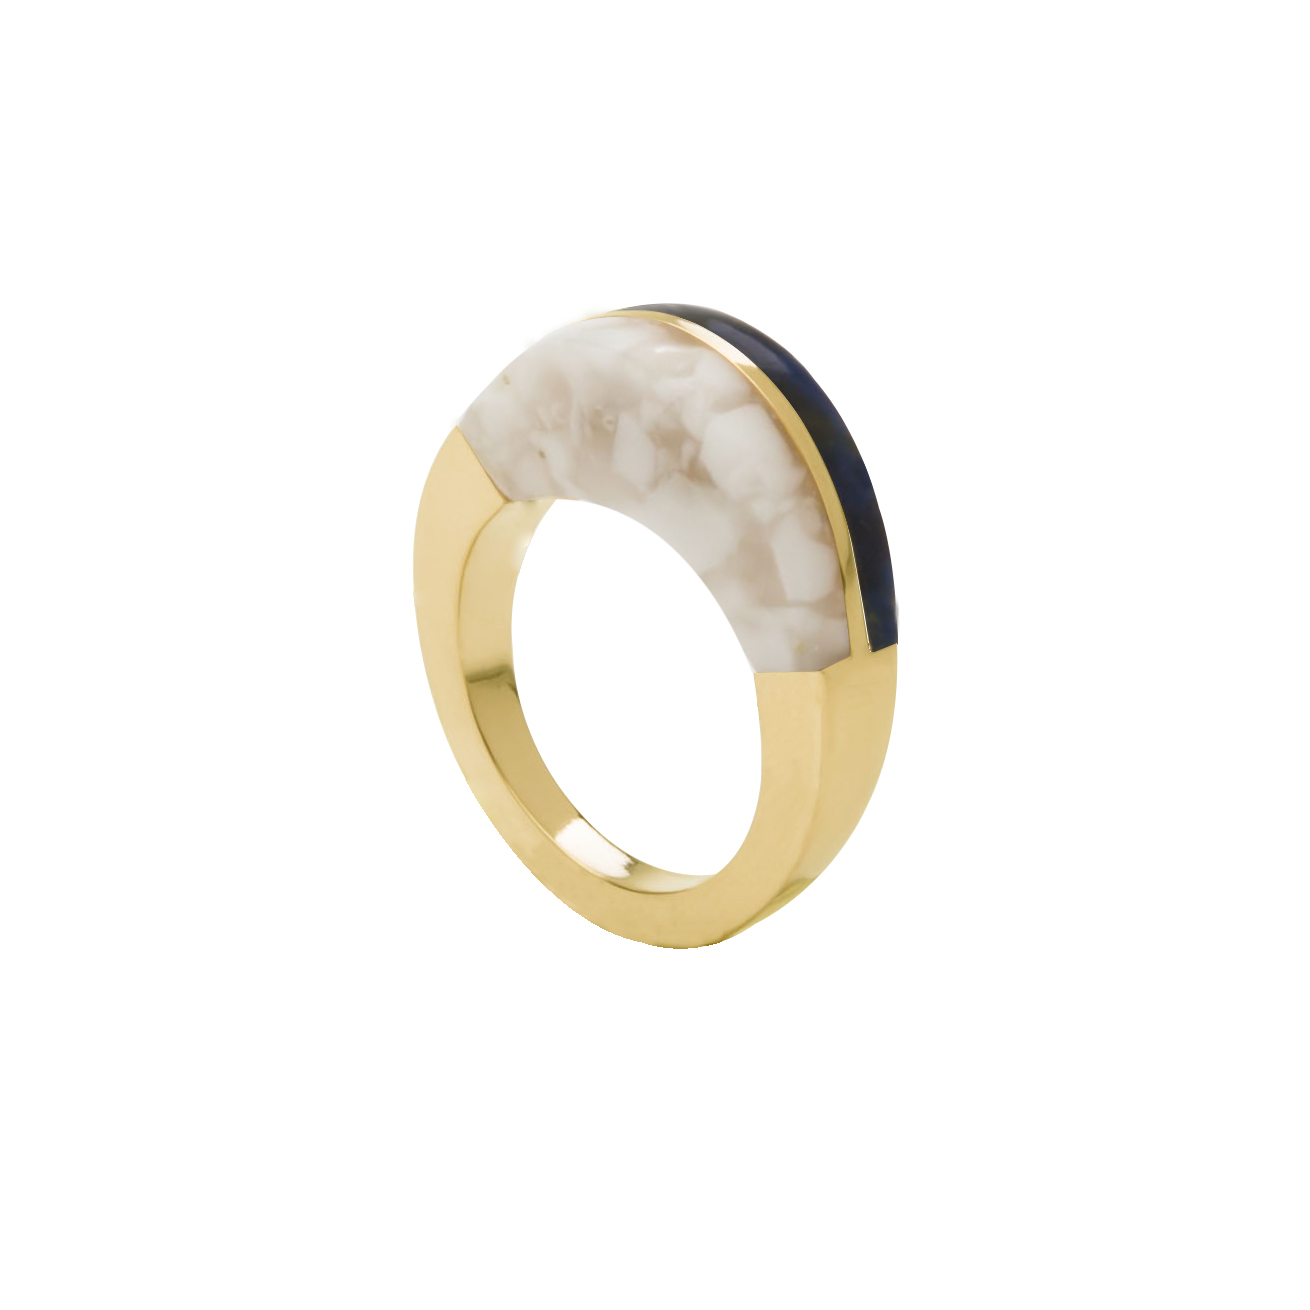 ring5-whitesque&blackishyellow-geel